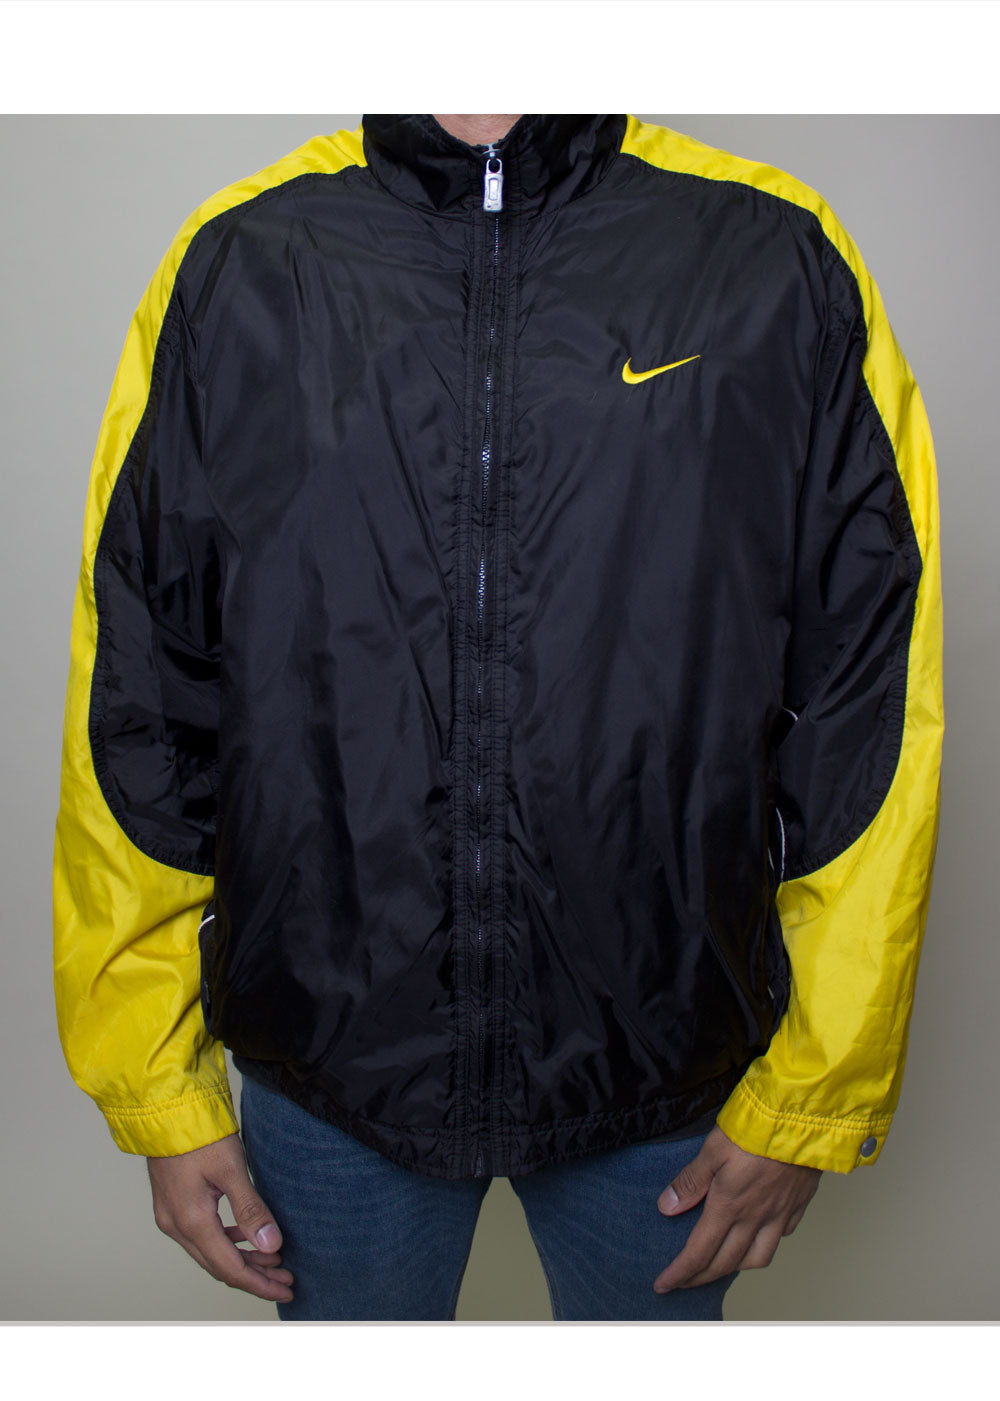 Yellow Accent Nike Windbreaker